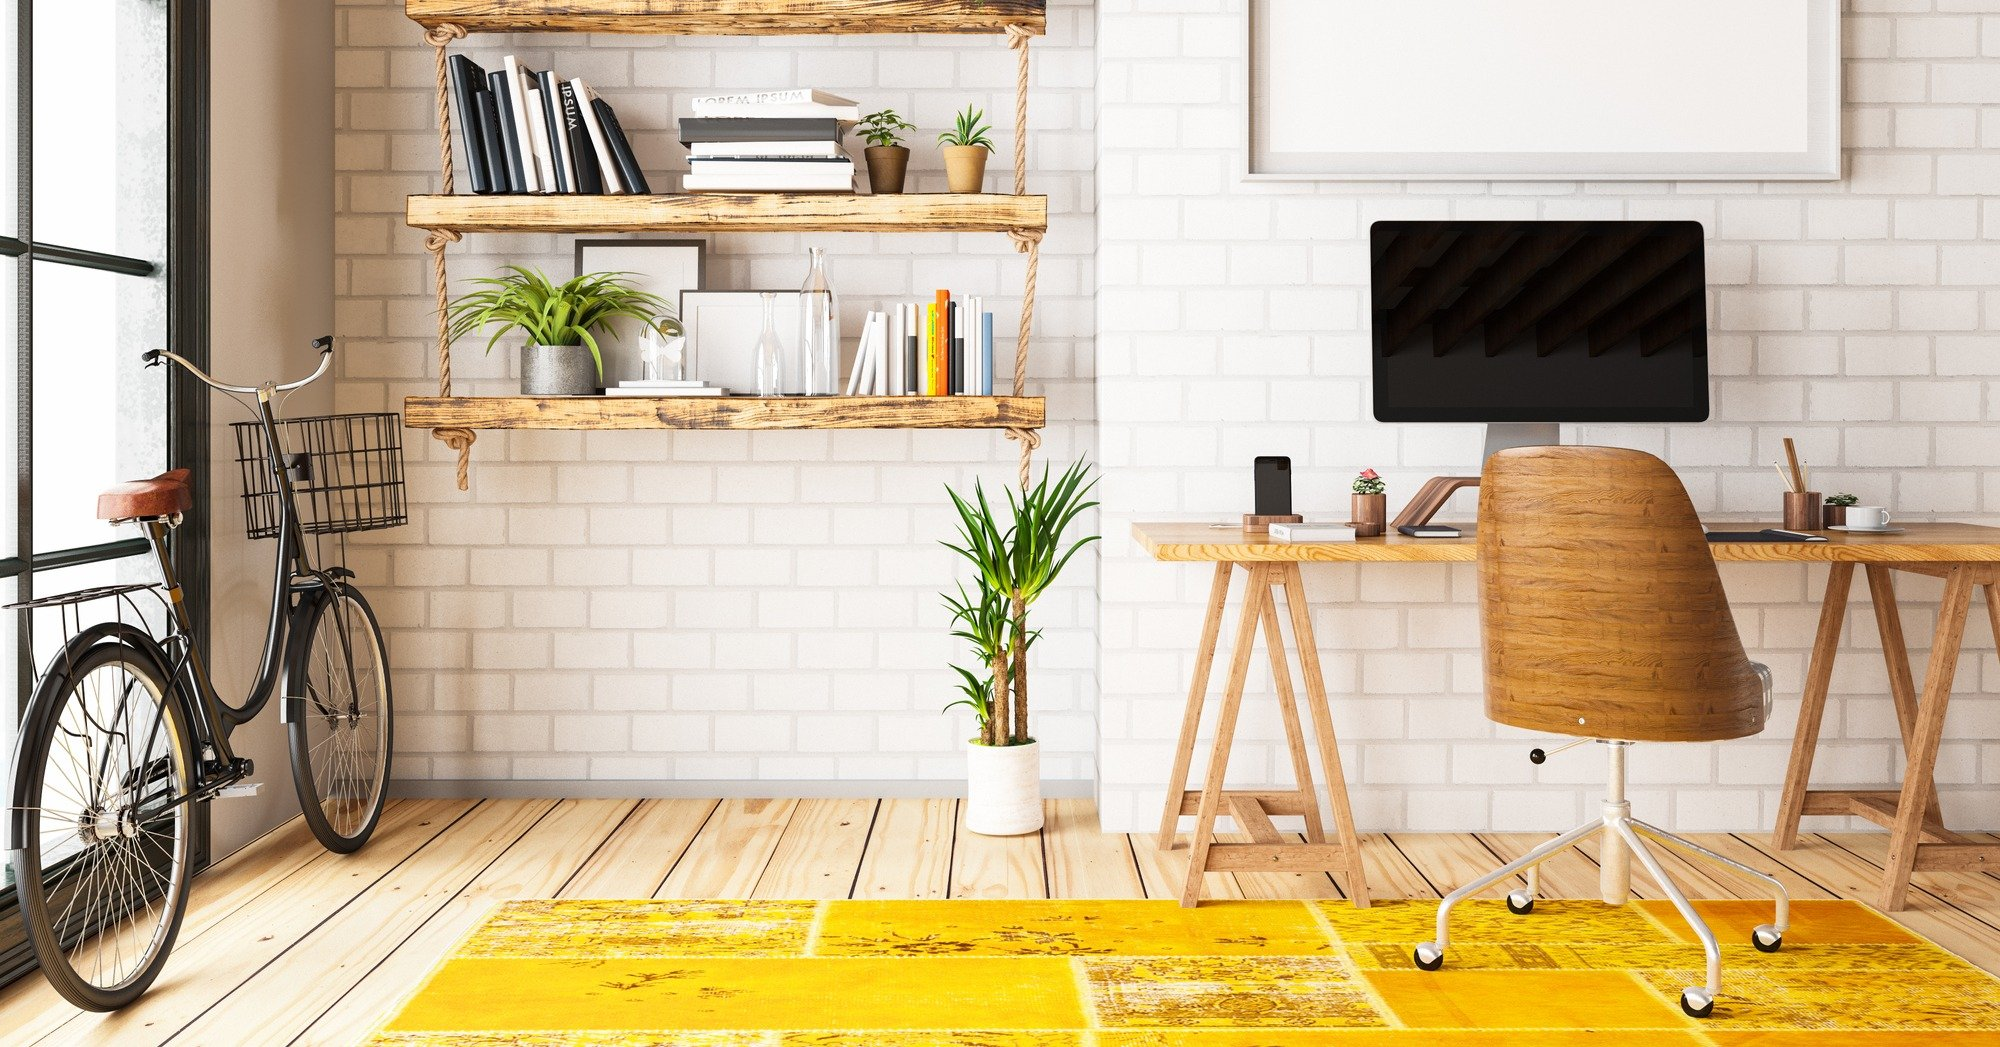 6 Tips for Working from Home During COVID-19